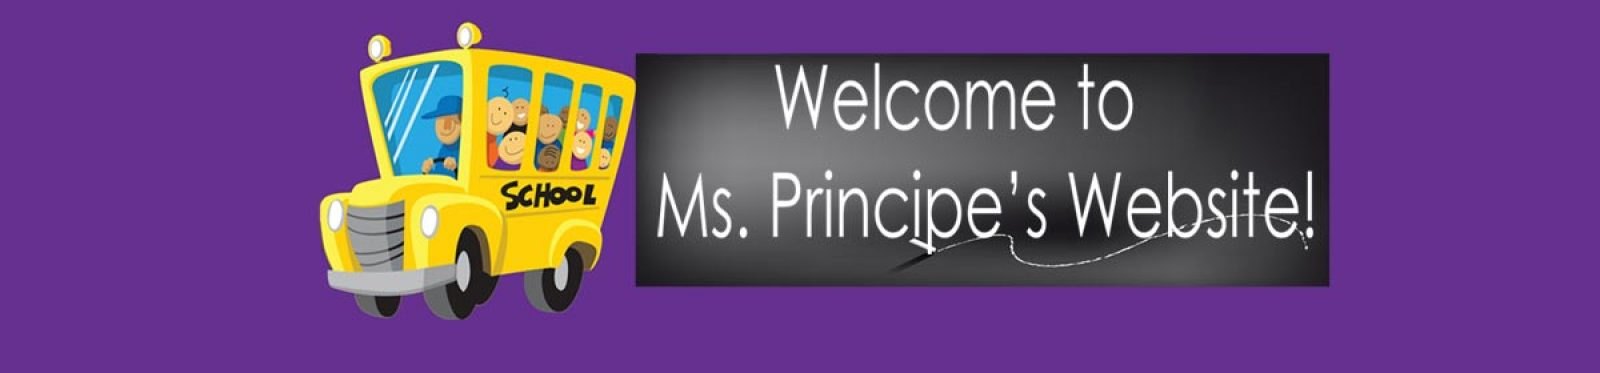 Ms. Principe's Website